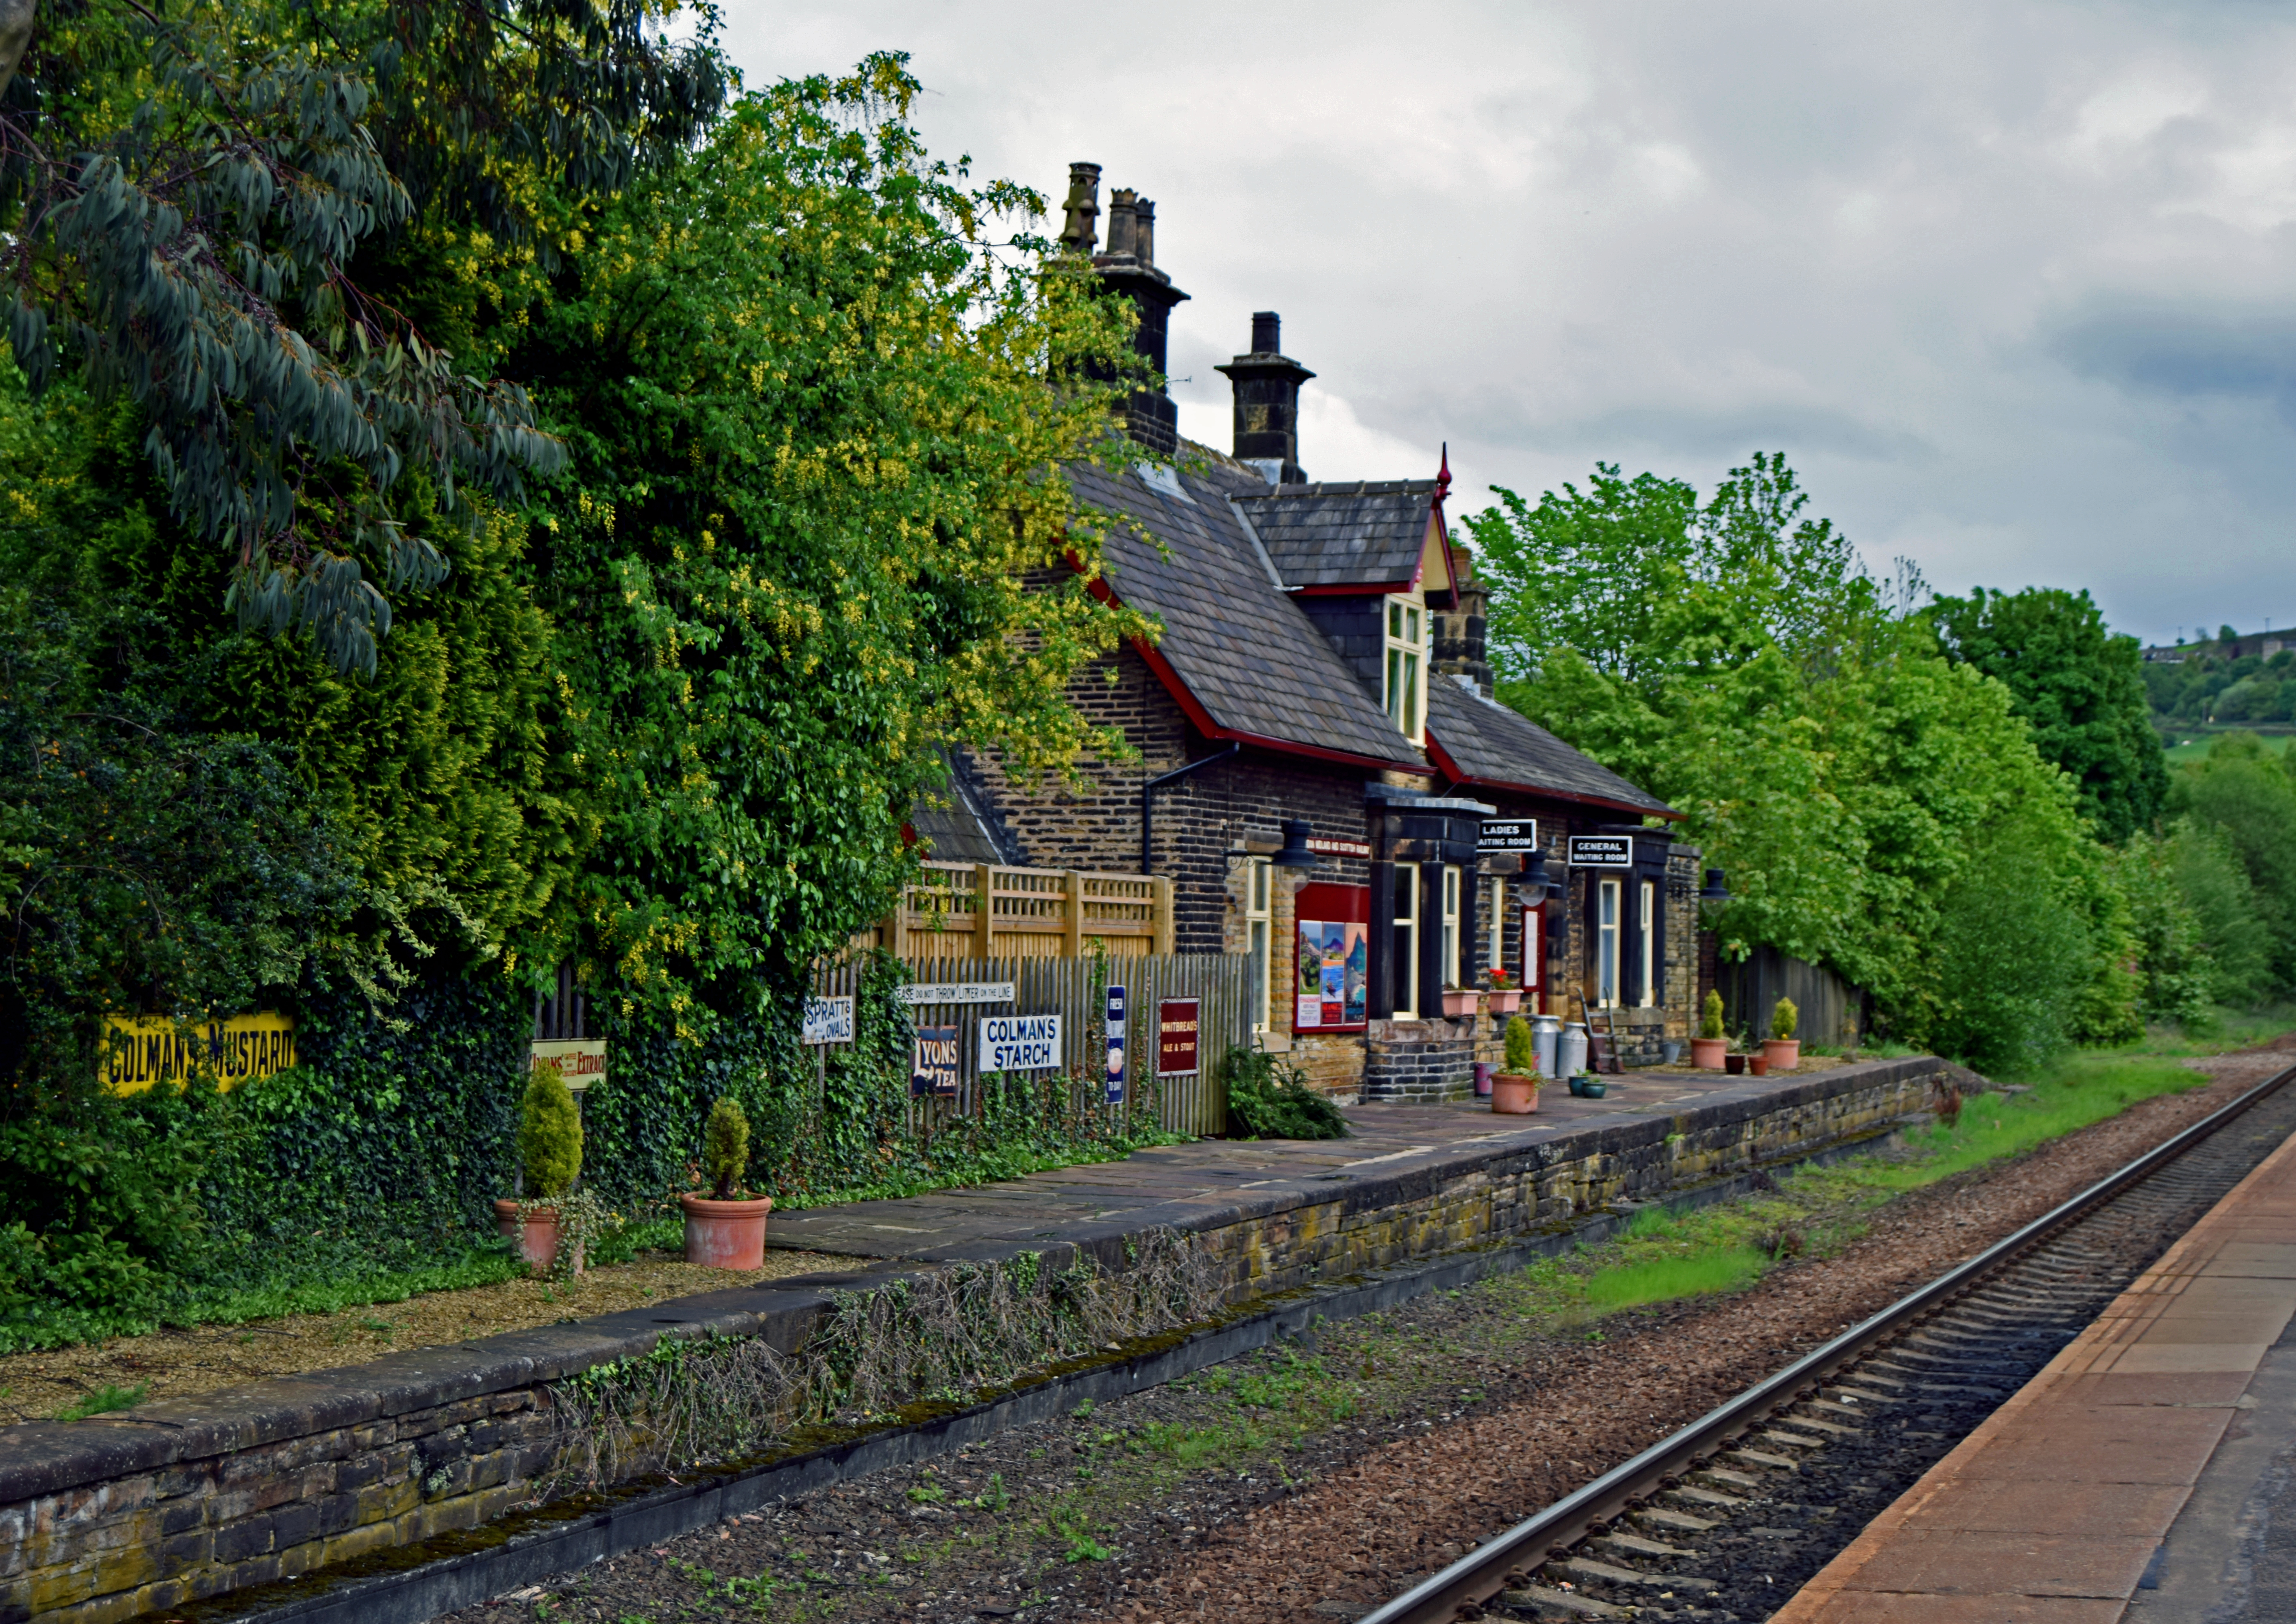 The Railway Station, Brockholes.